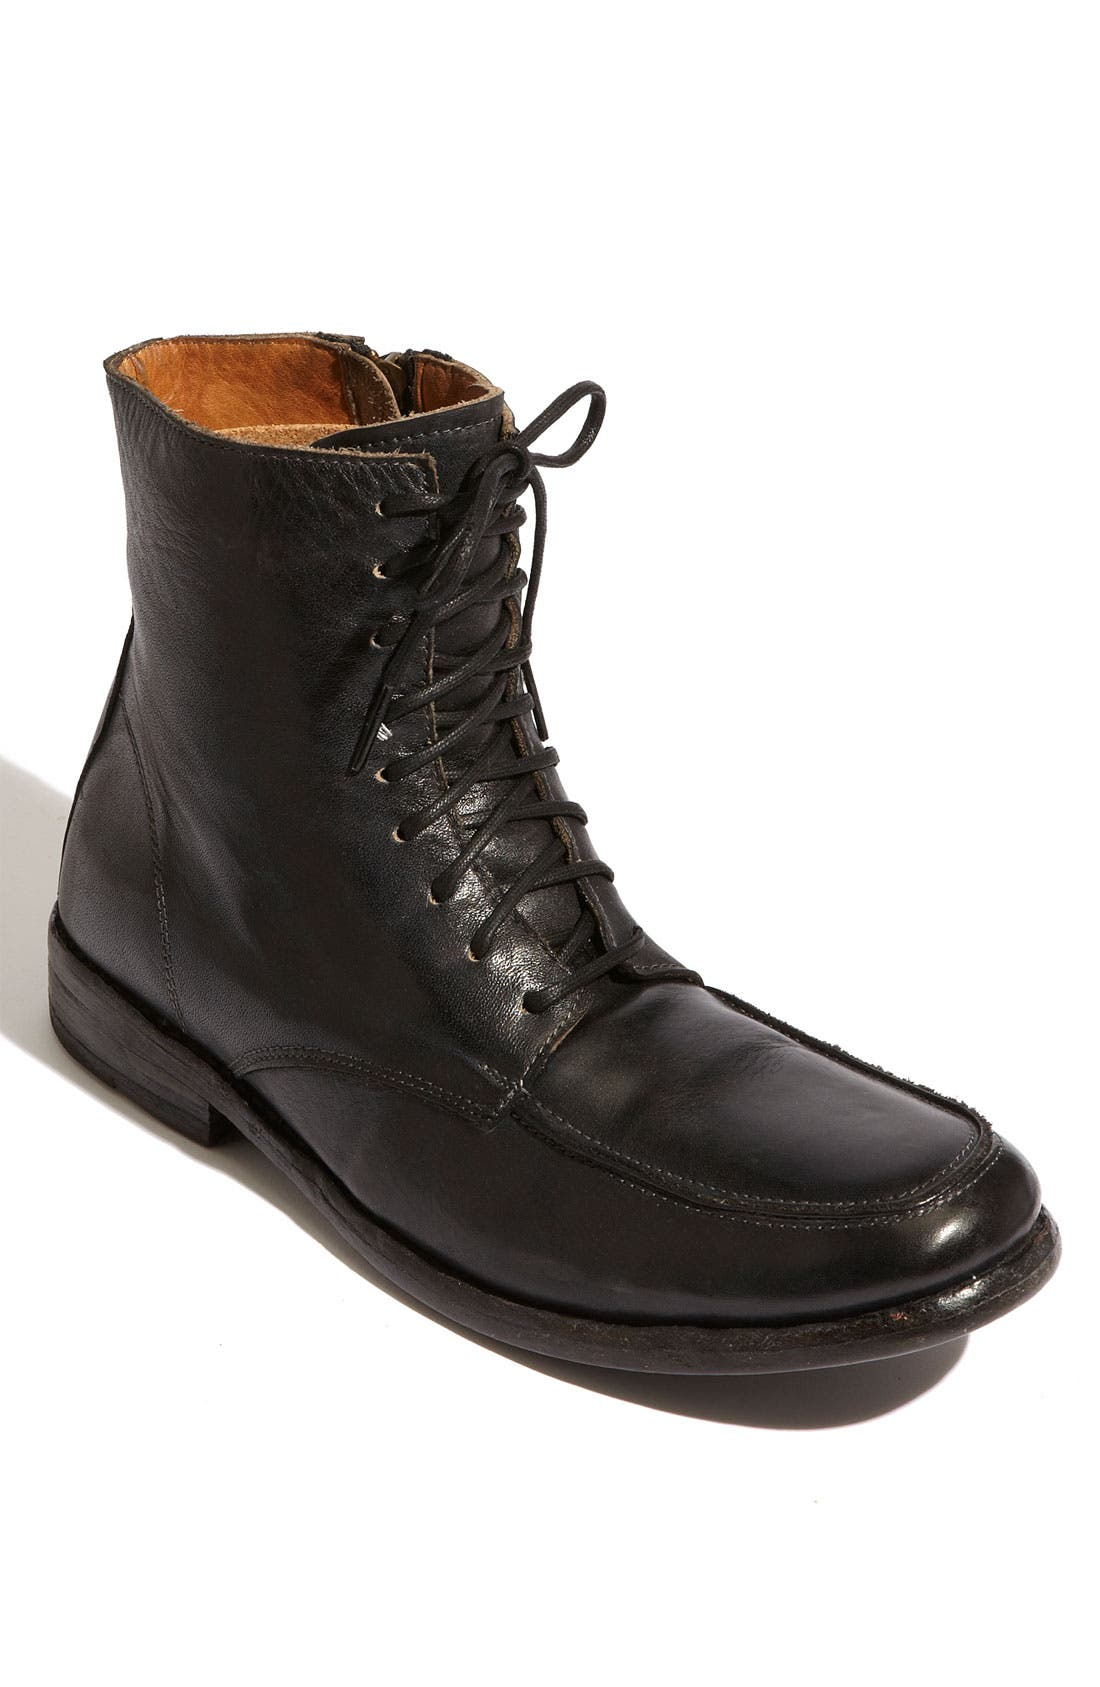 'Leo' Boot,                             Main thumbnail 1, color,                             Black Rustic